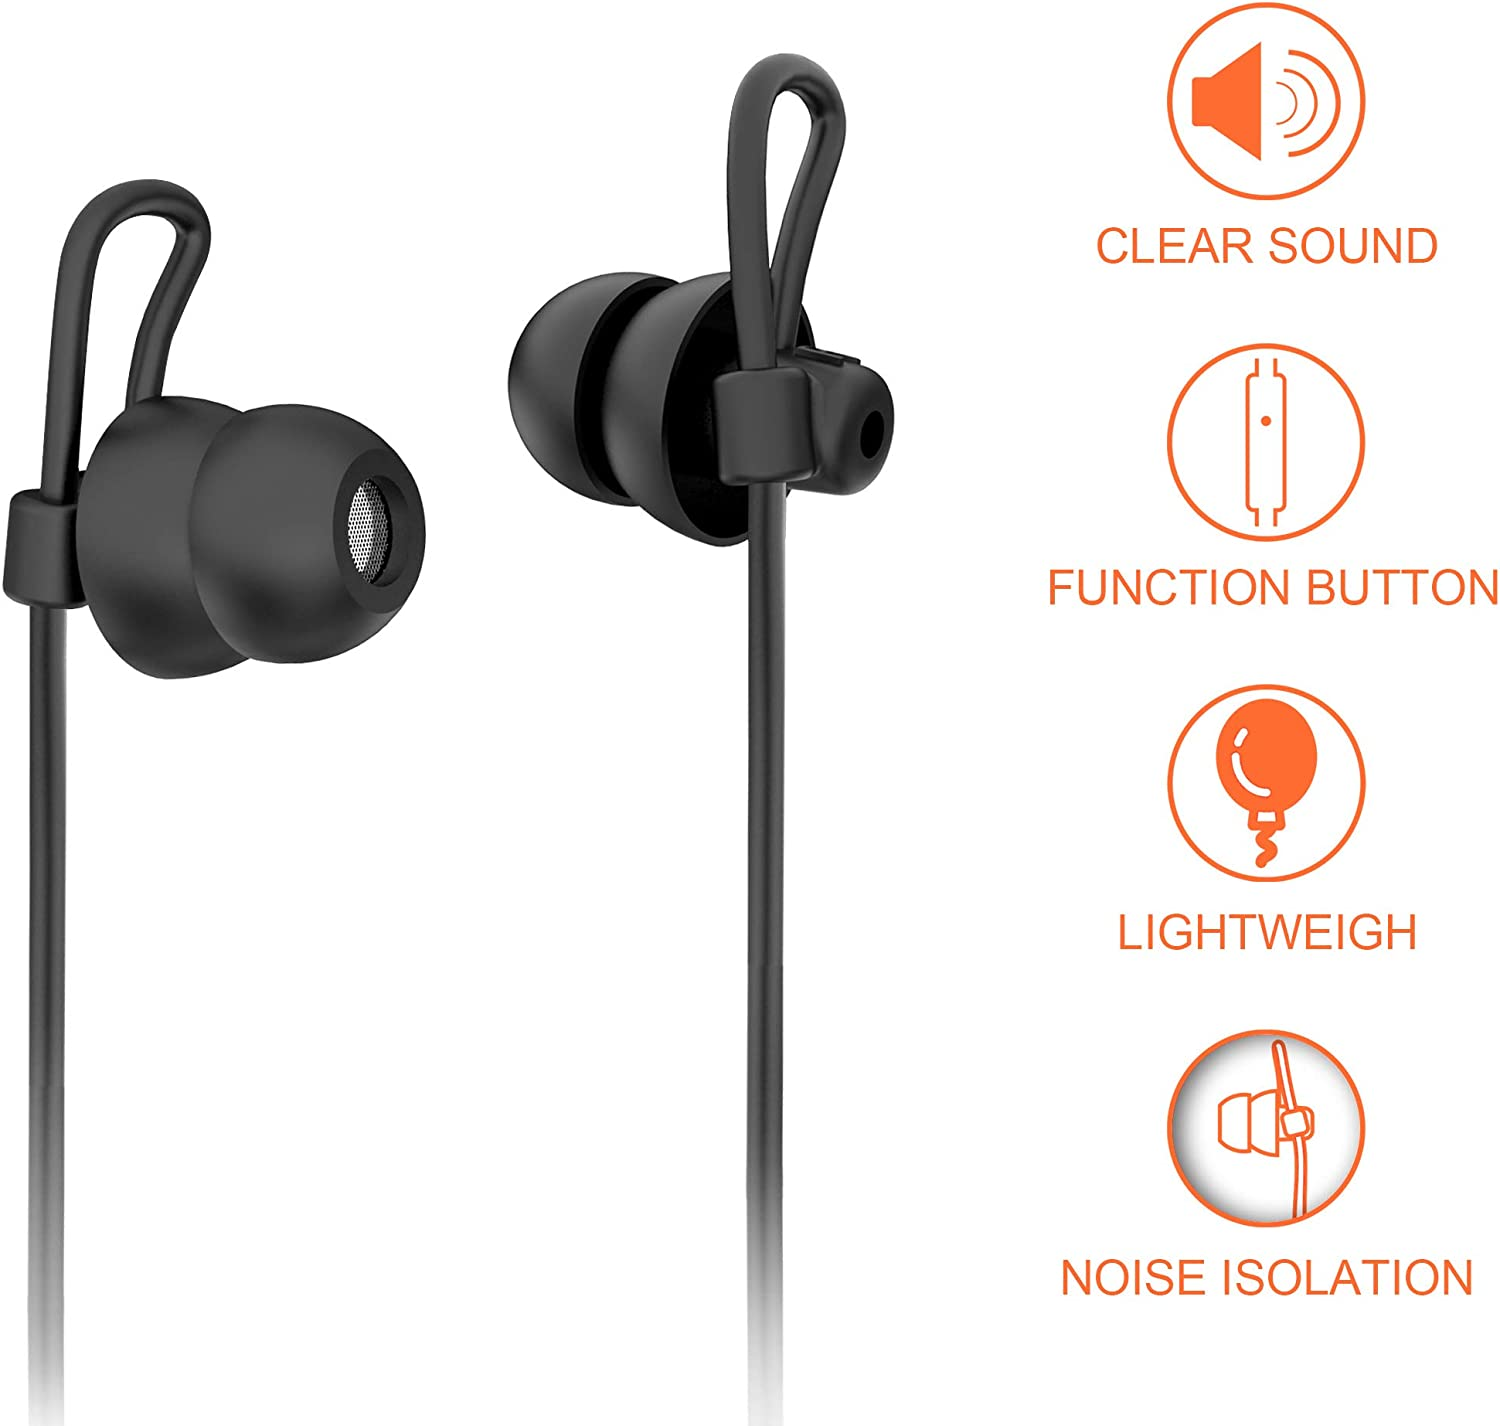 Sleep Earbuds Sleeping Noise Isolation Headphones with Unique Fully Soft Silicone Earplug,Sleep Earphones with Mic,Perfect for Sleeping,Insomnia,Side Sleeper,Snoring,Air Travel,Meditation /& Relaxation VZ SPORT MATE